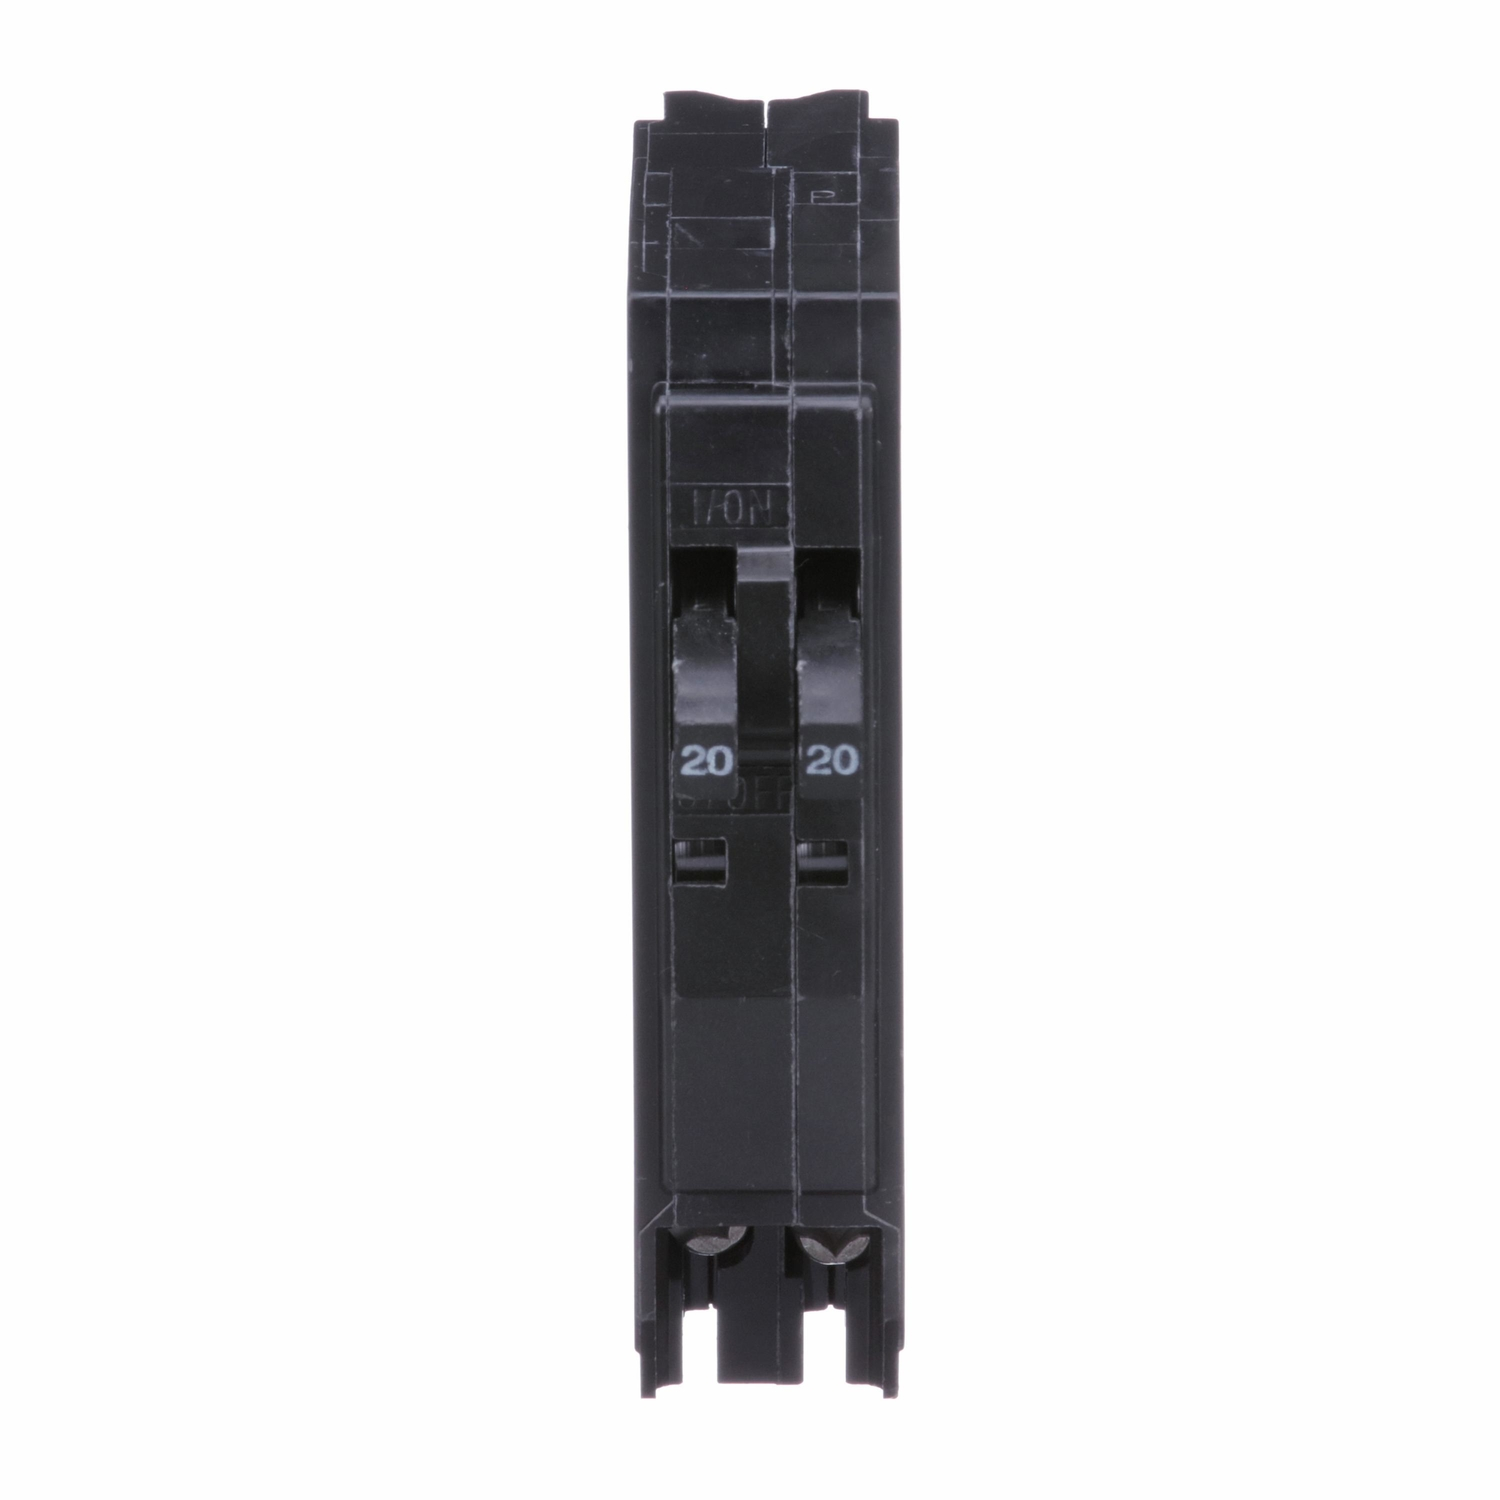 House Breaker Fuse Box Amps 10000 Electrical Wiring Diagram Home Circuit Square D Qo 20 Tandem Single Pole Ace Hardware Old Boxes